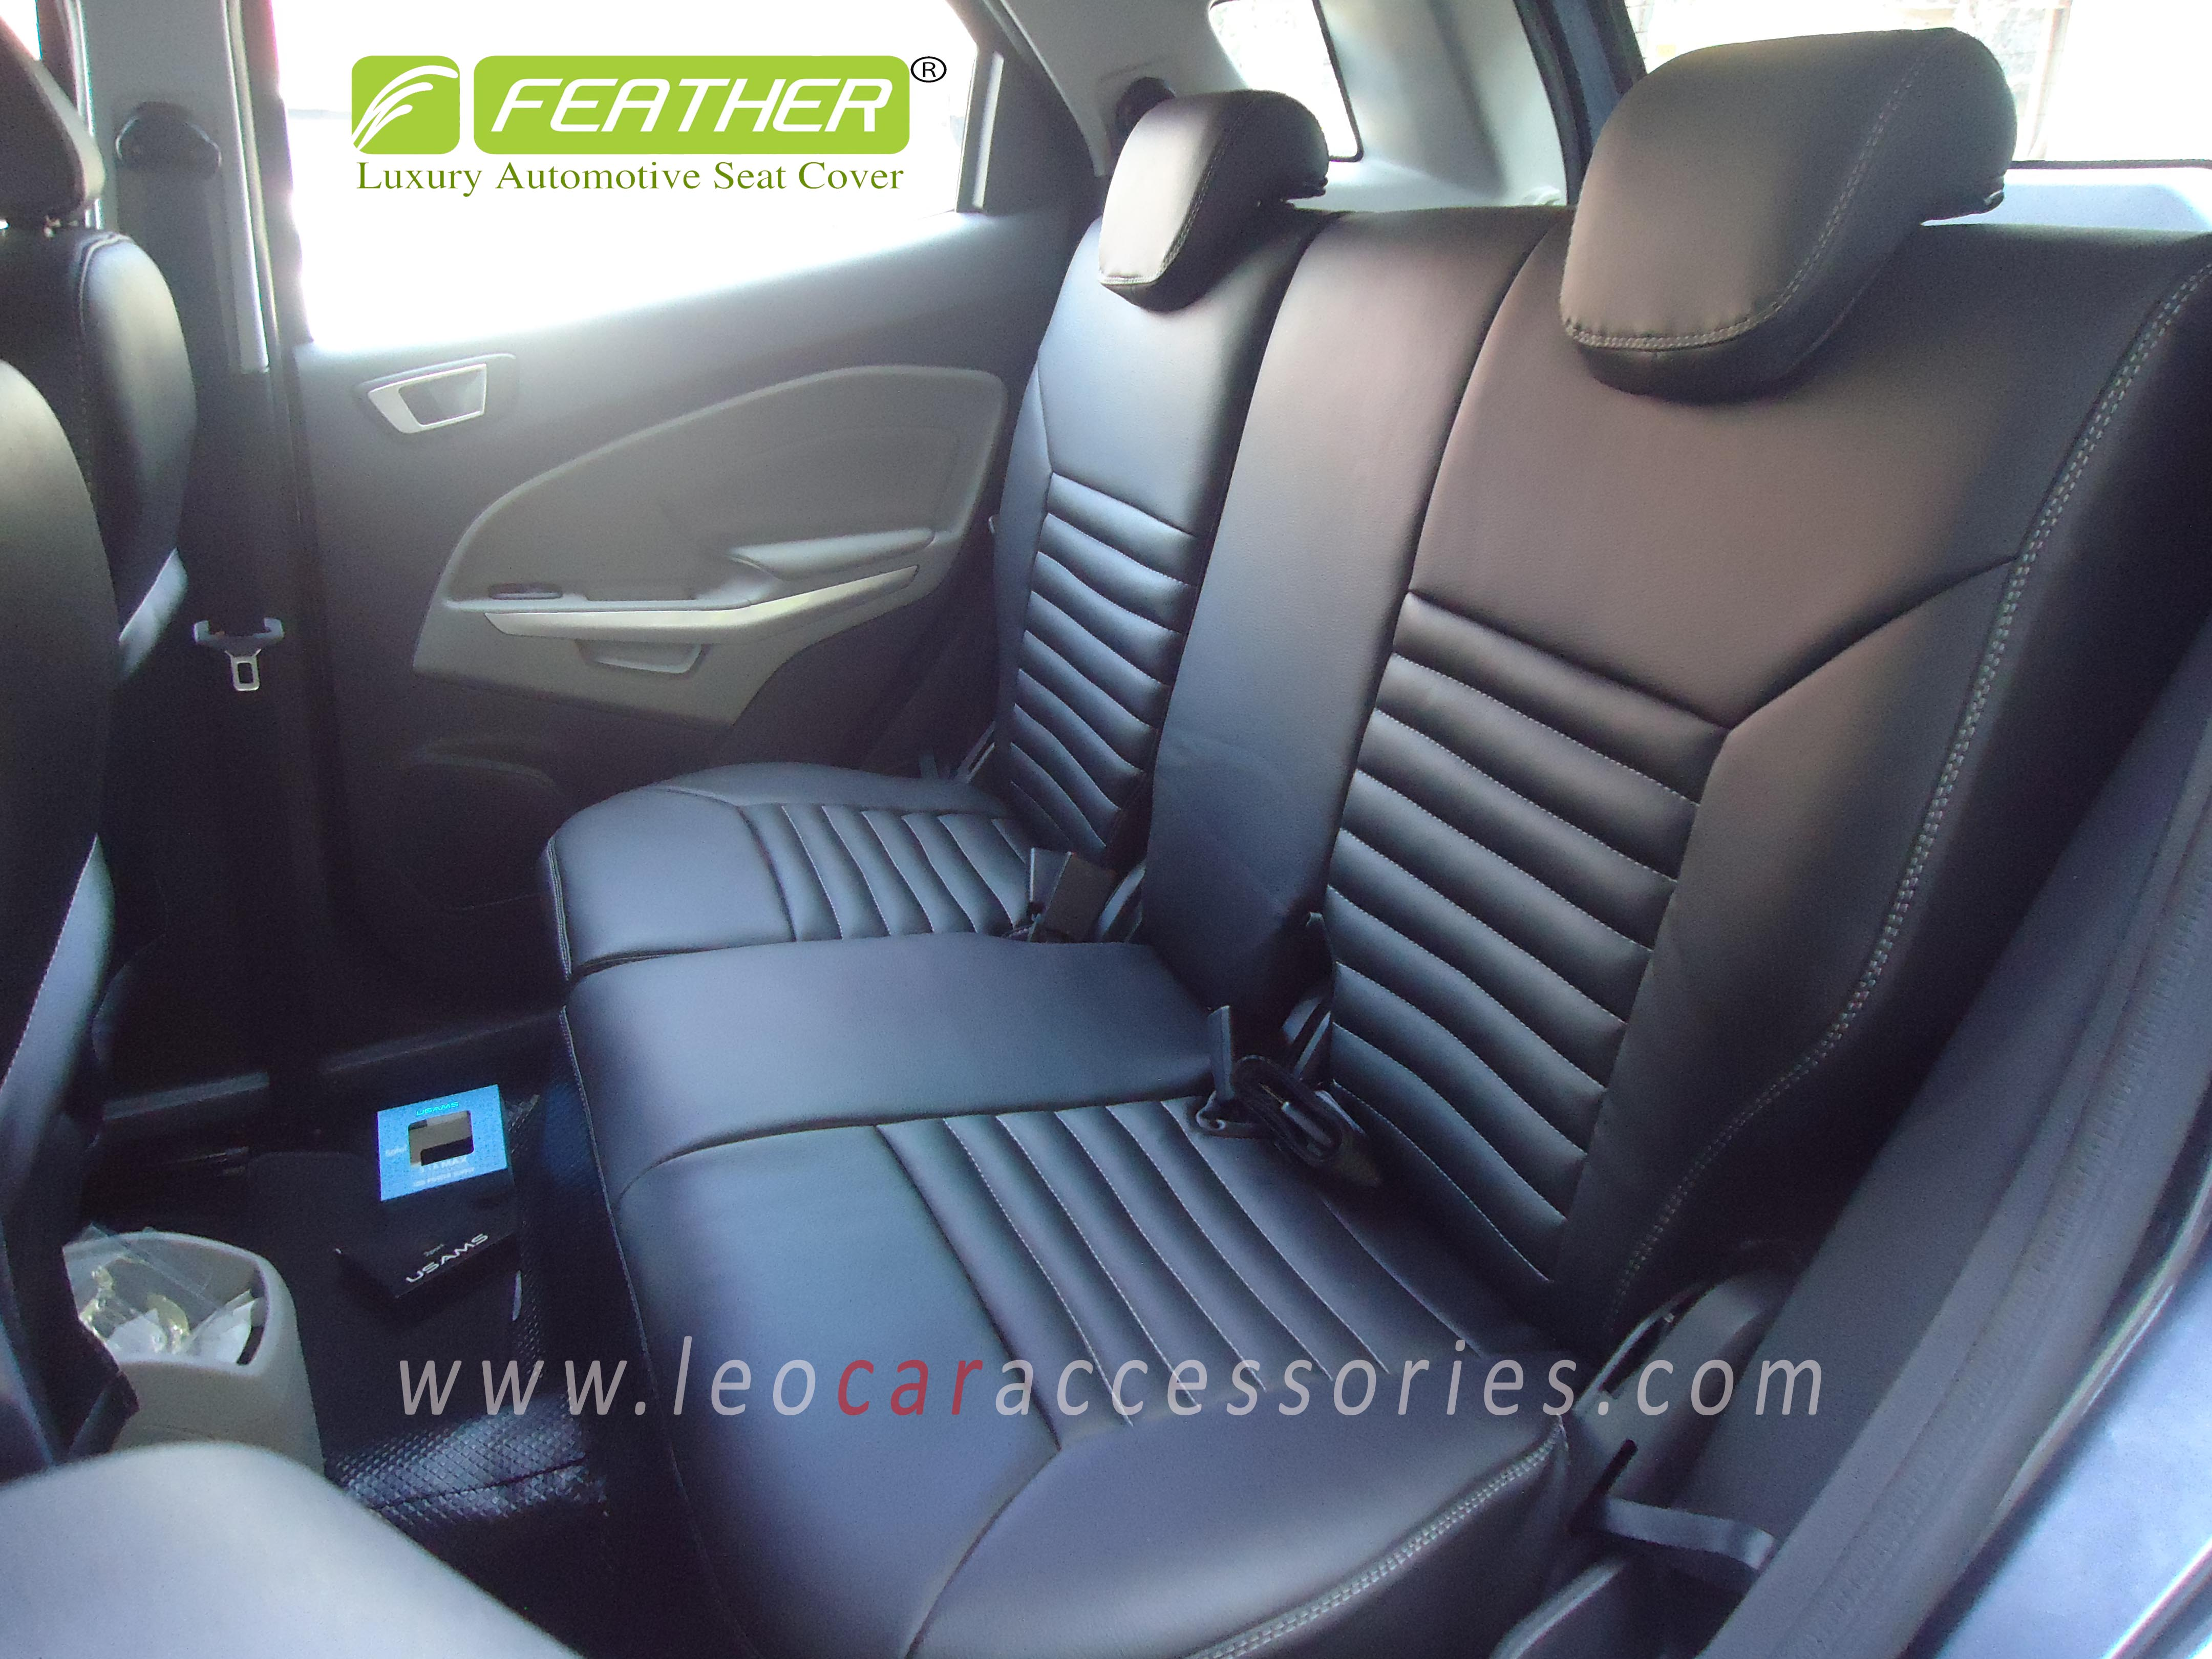 Feather Customized Car Seat Cover For Ford Ecosport Single Color-Black Rib Pattern